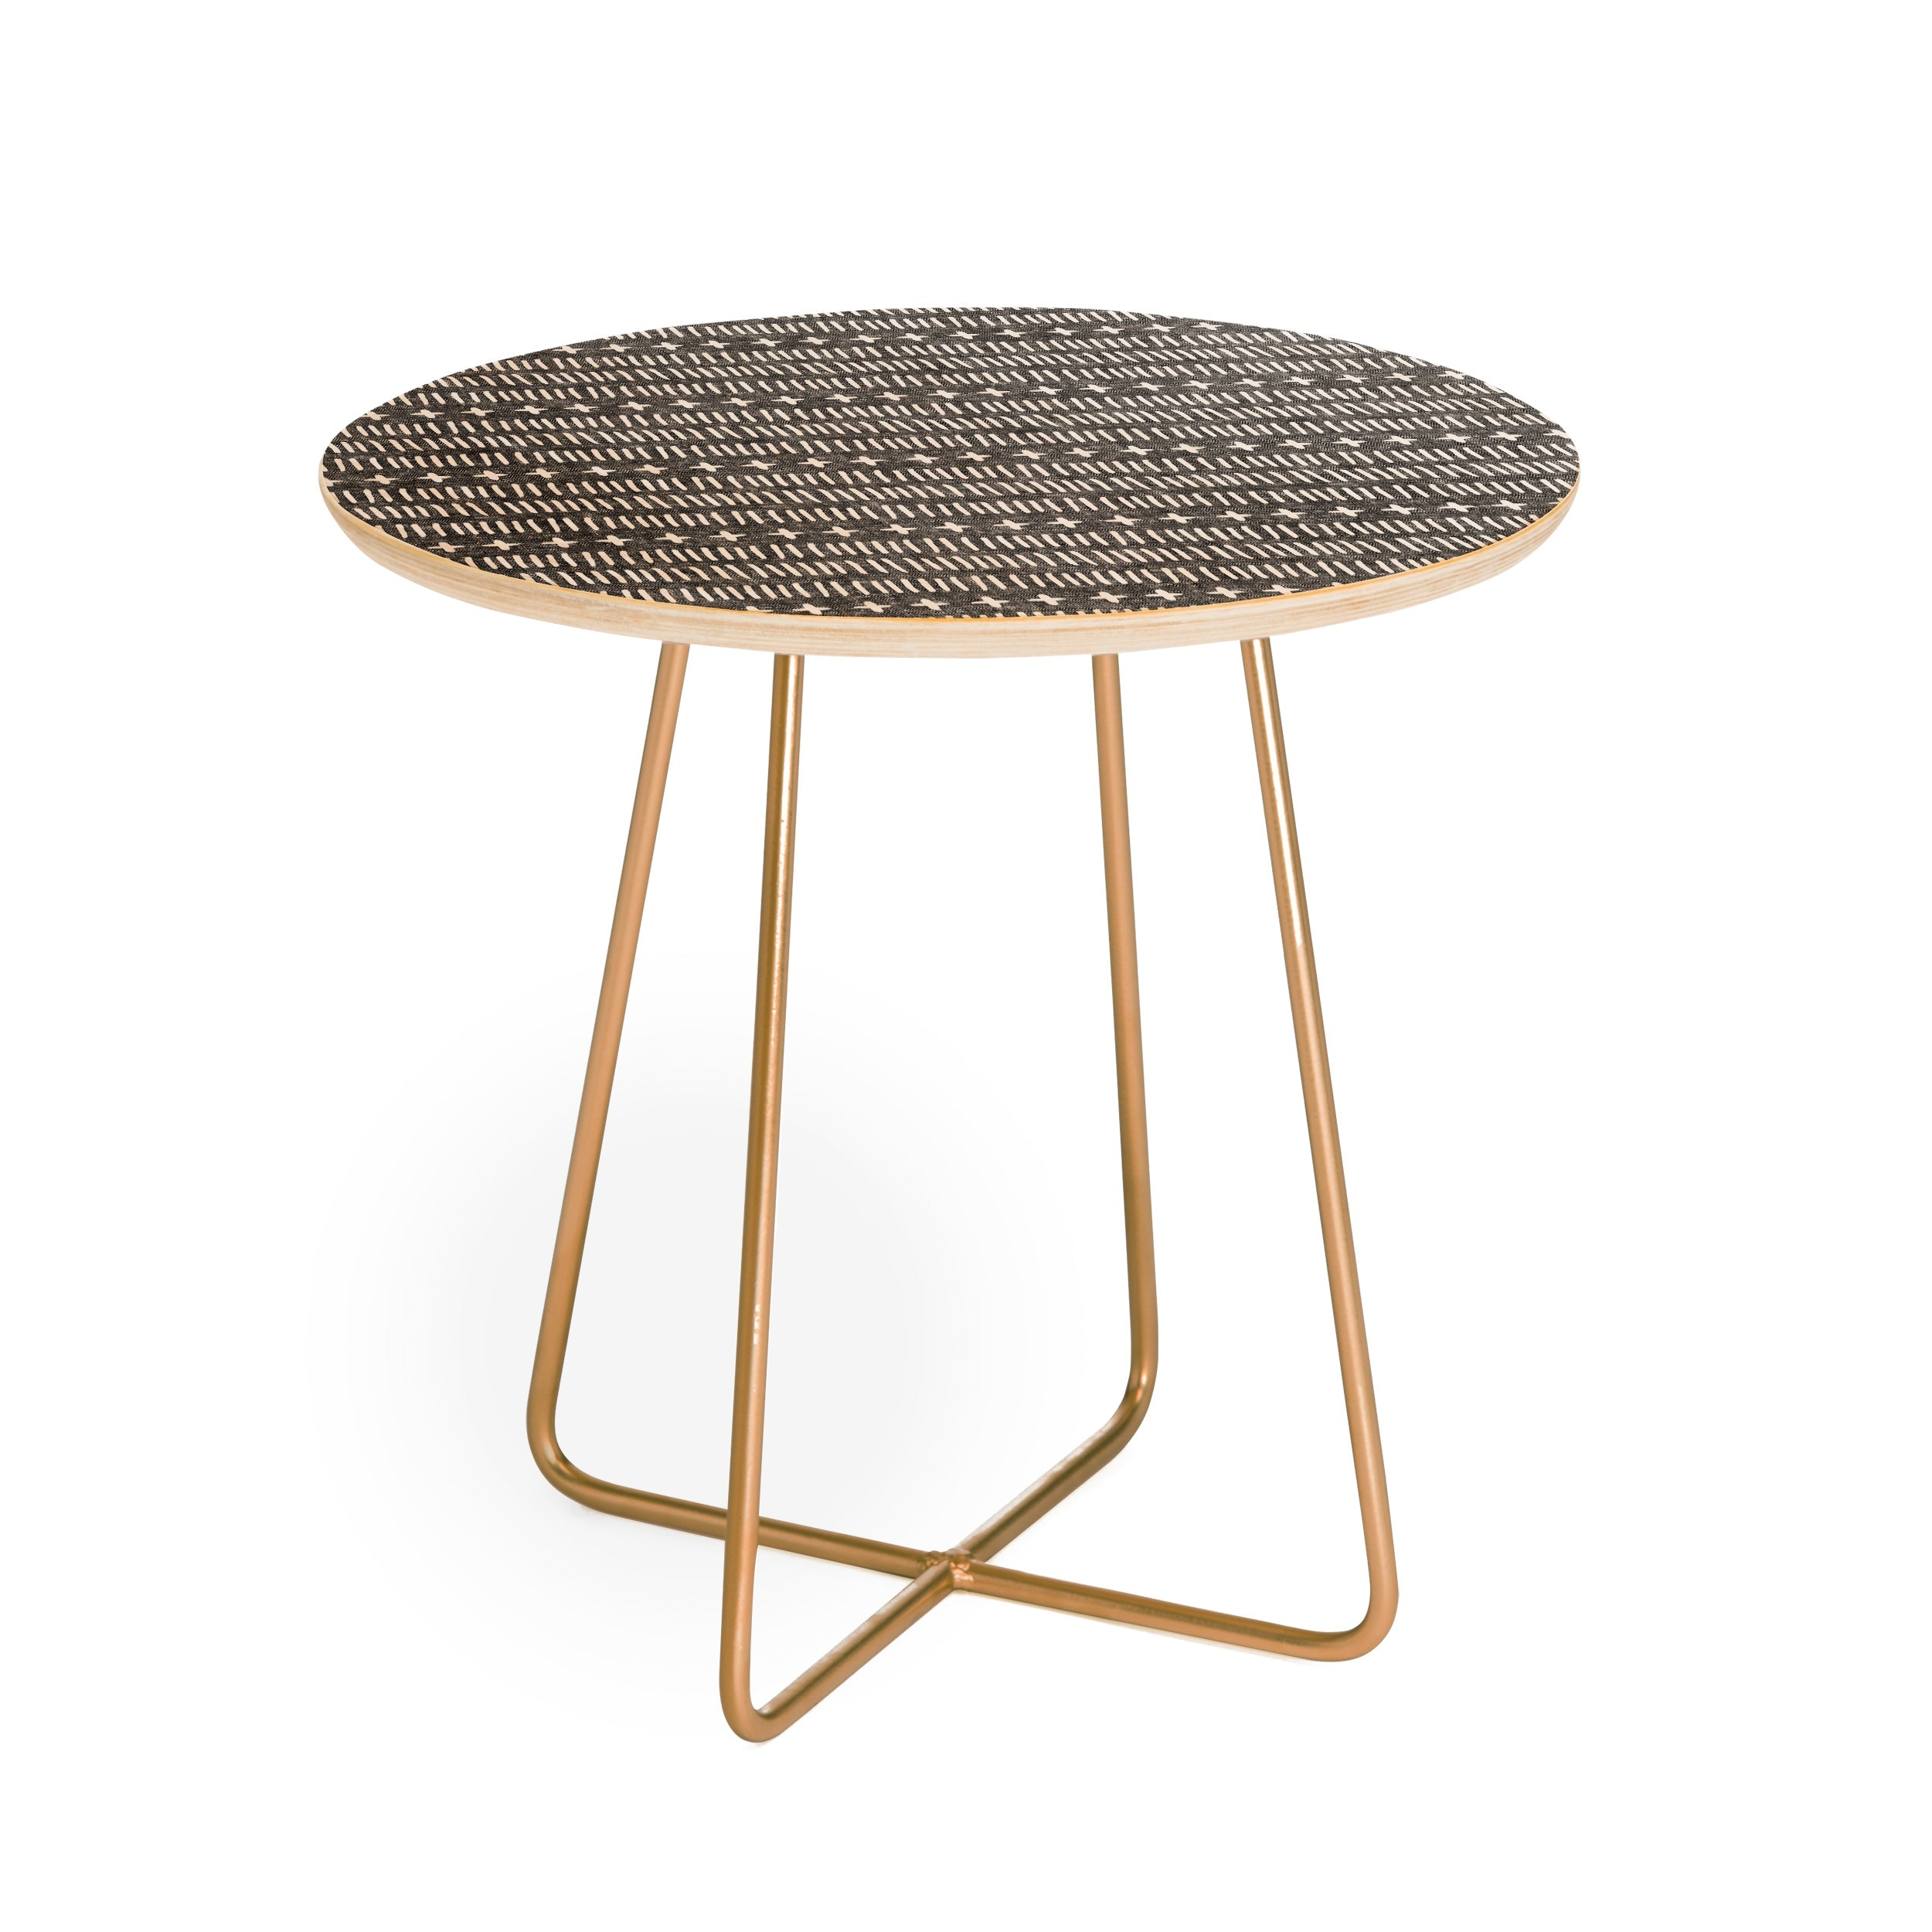 Little Arrow Design Co Marrakesh dash Round Side Table